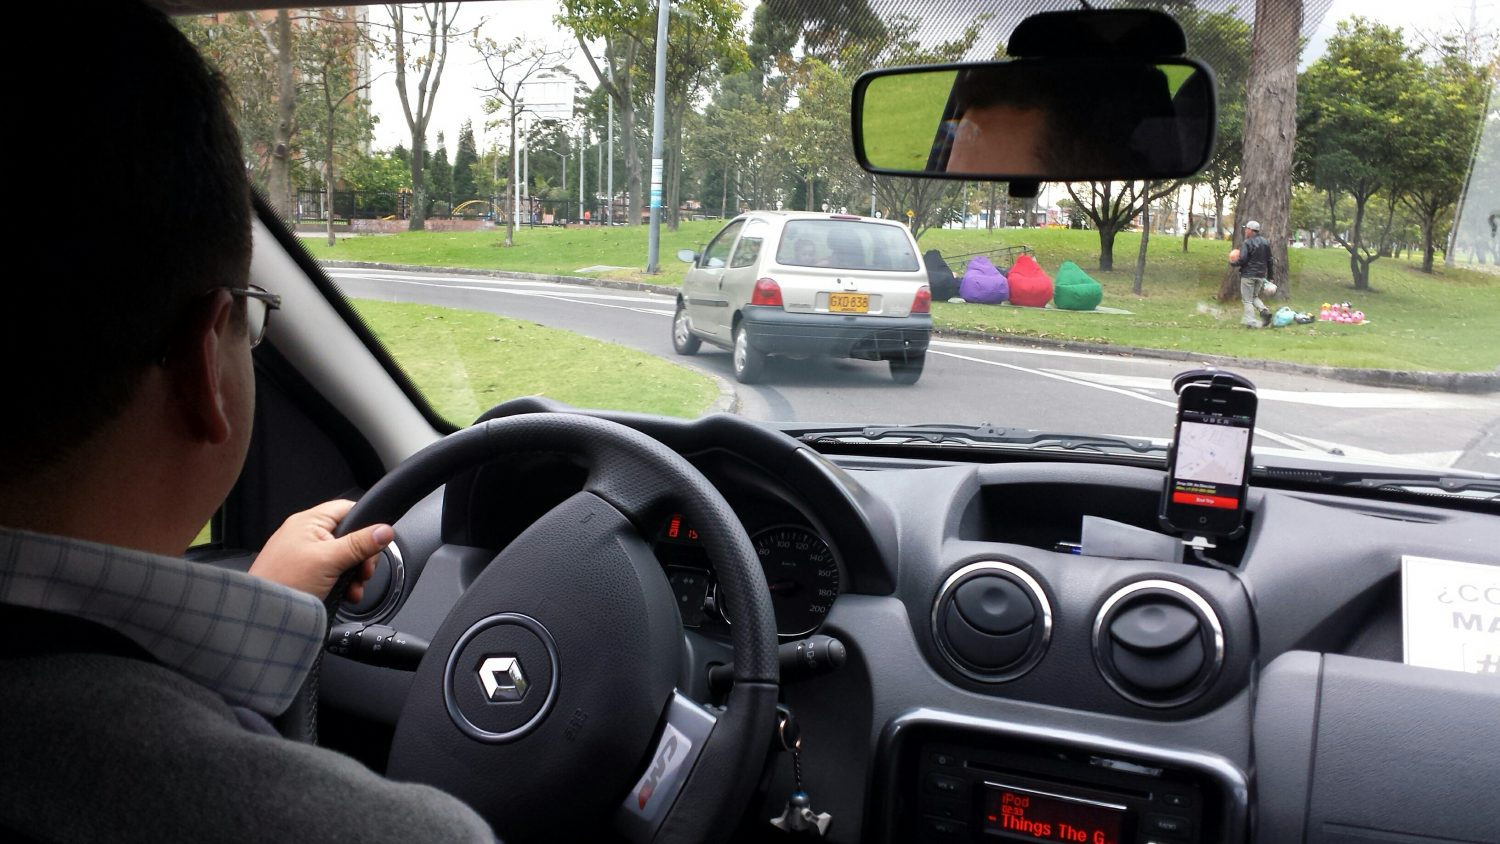 A classic Uber drive, with the Uber app visible on the phone.